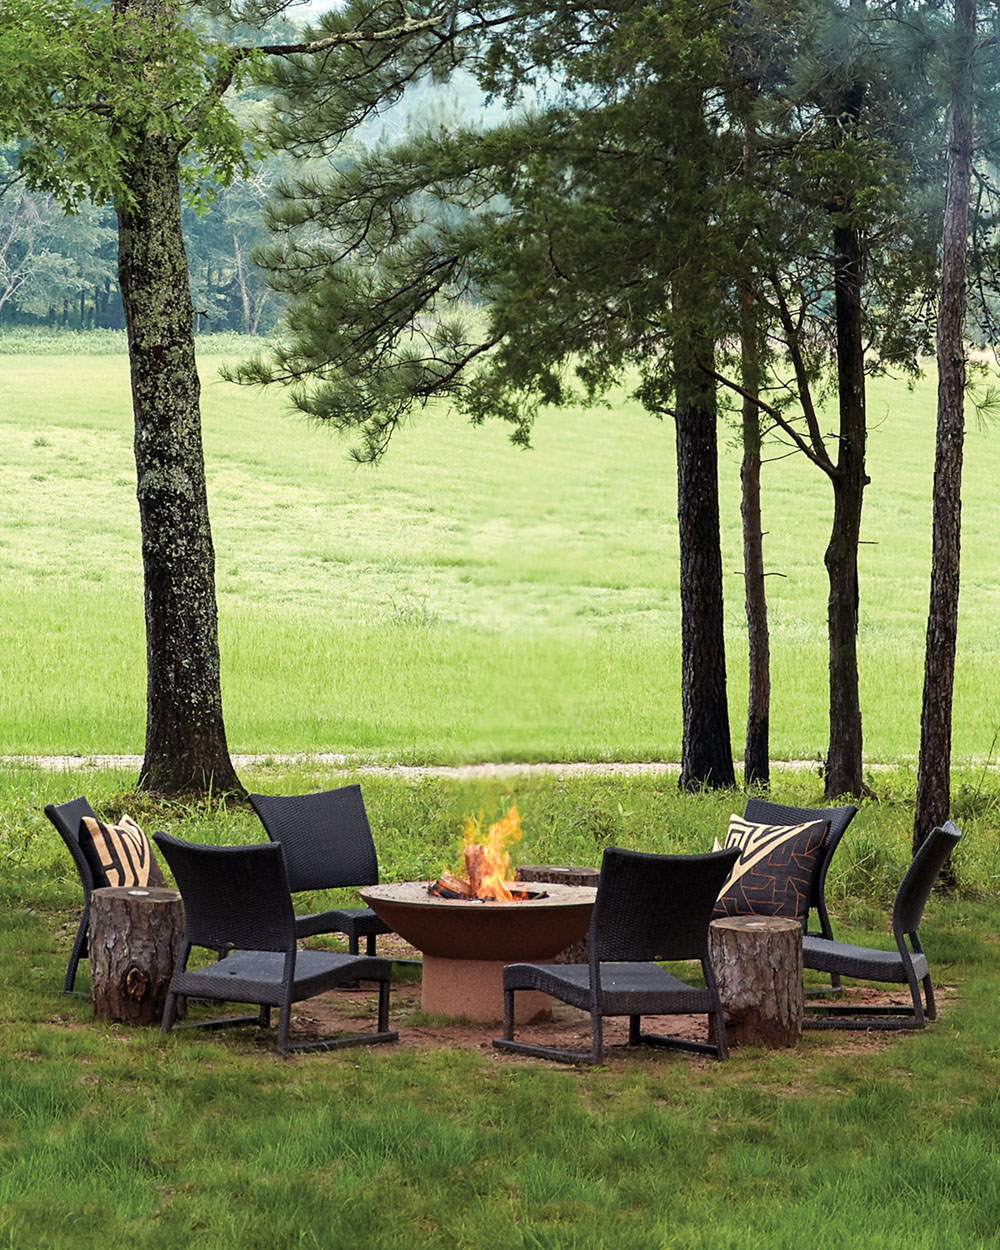 Arteflame firepit and chairs